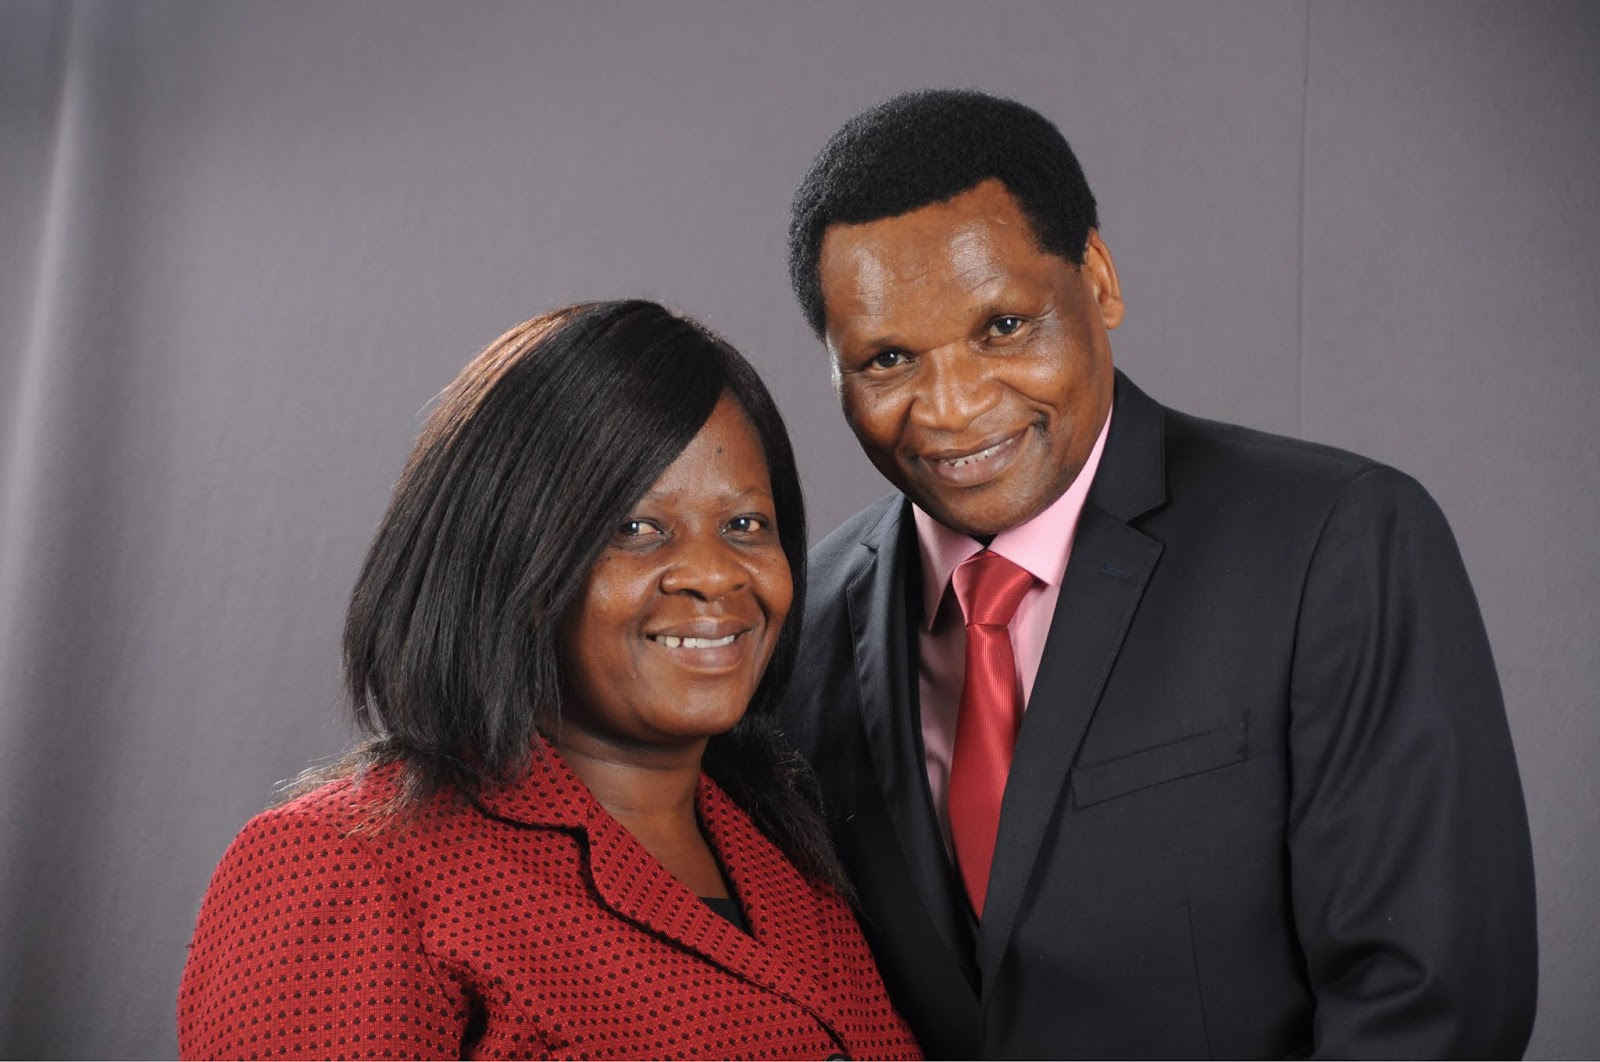 More Details Emerge On Suicide Pastor Berry Dambaza's Embezzlement Allegations